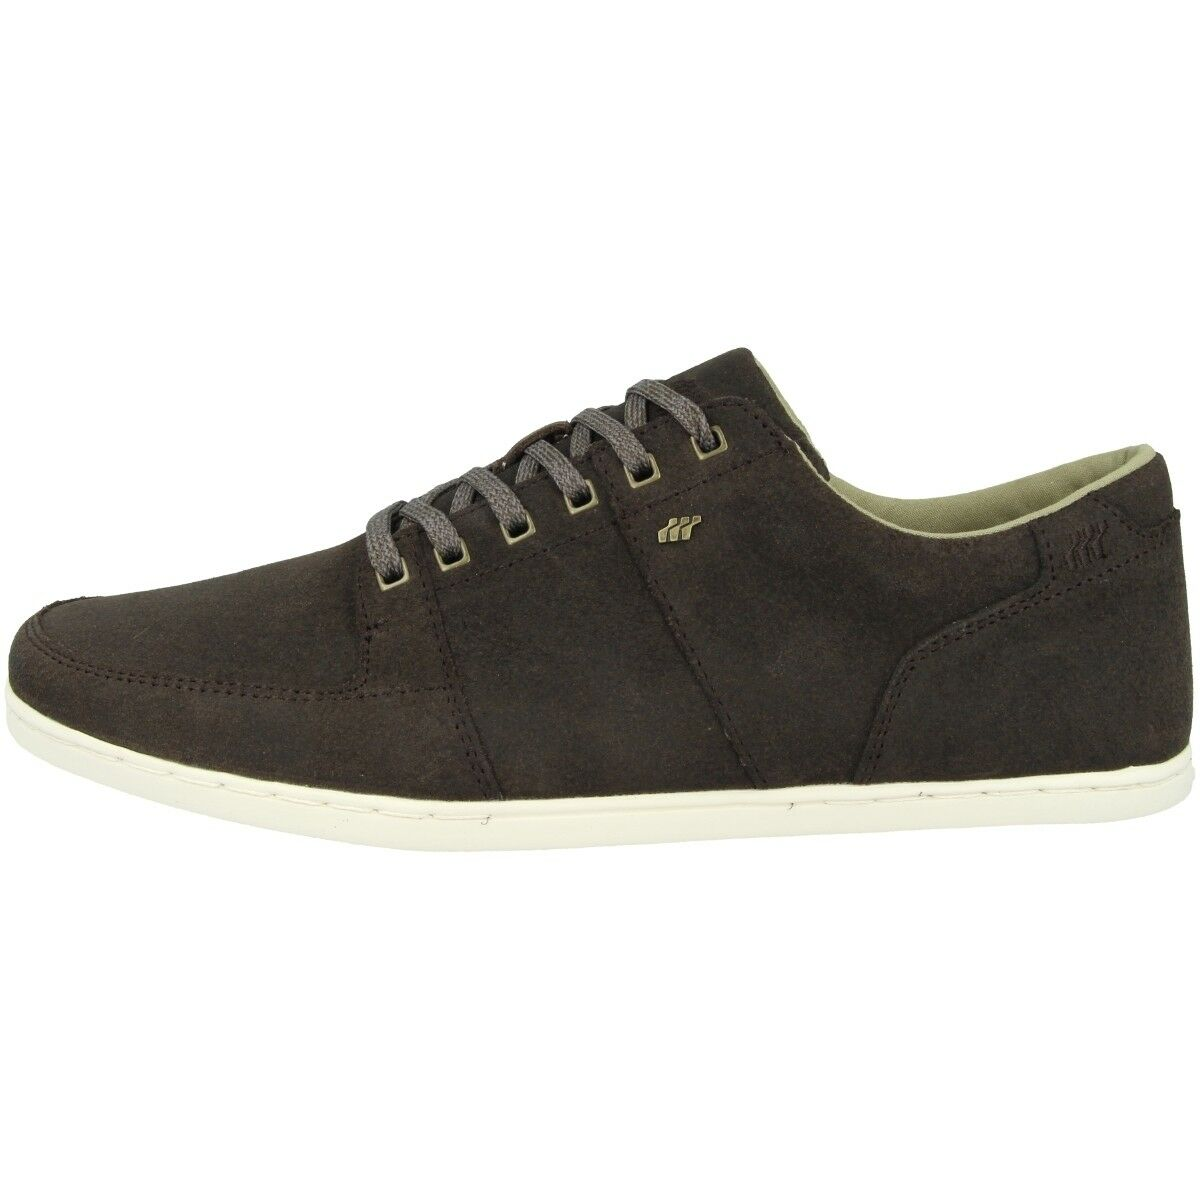 Boxfresh Spencer SH Waxed Suede Men Chaussures Hommes Loisirs baskets kaki e15364